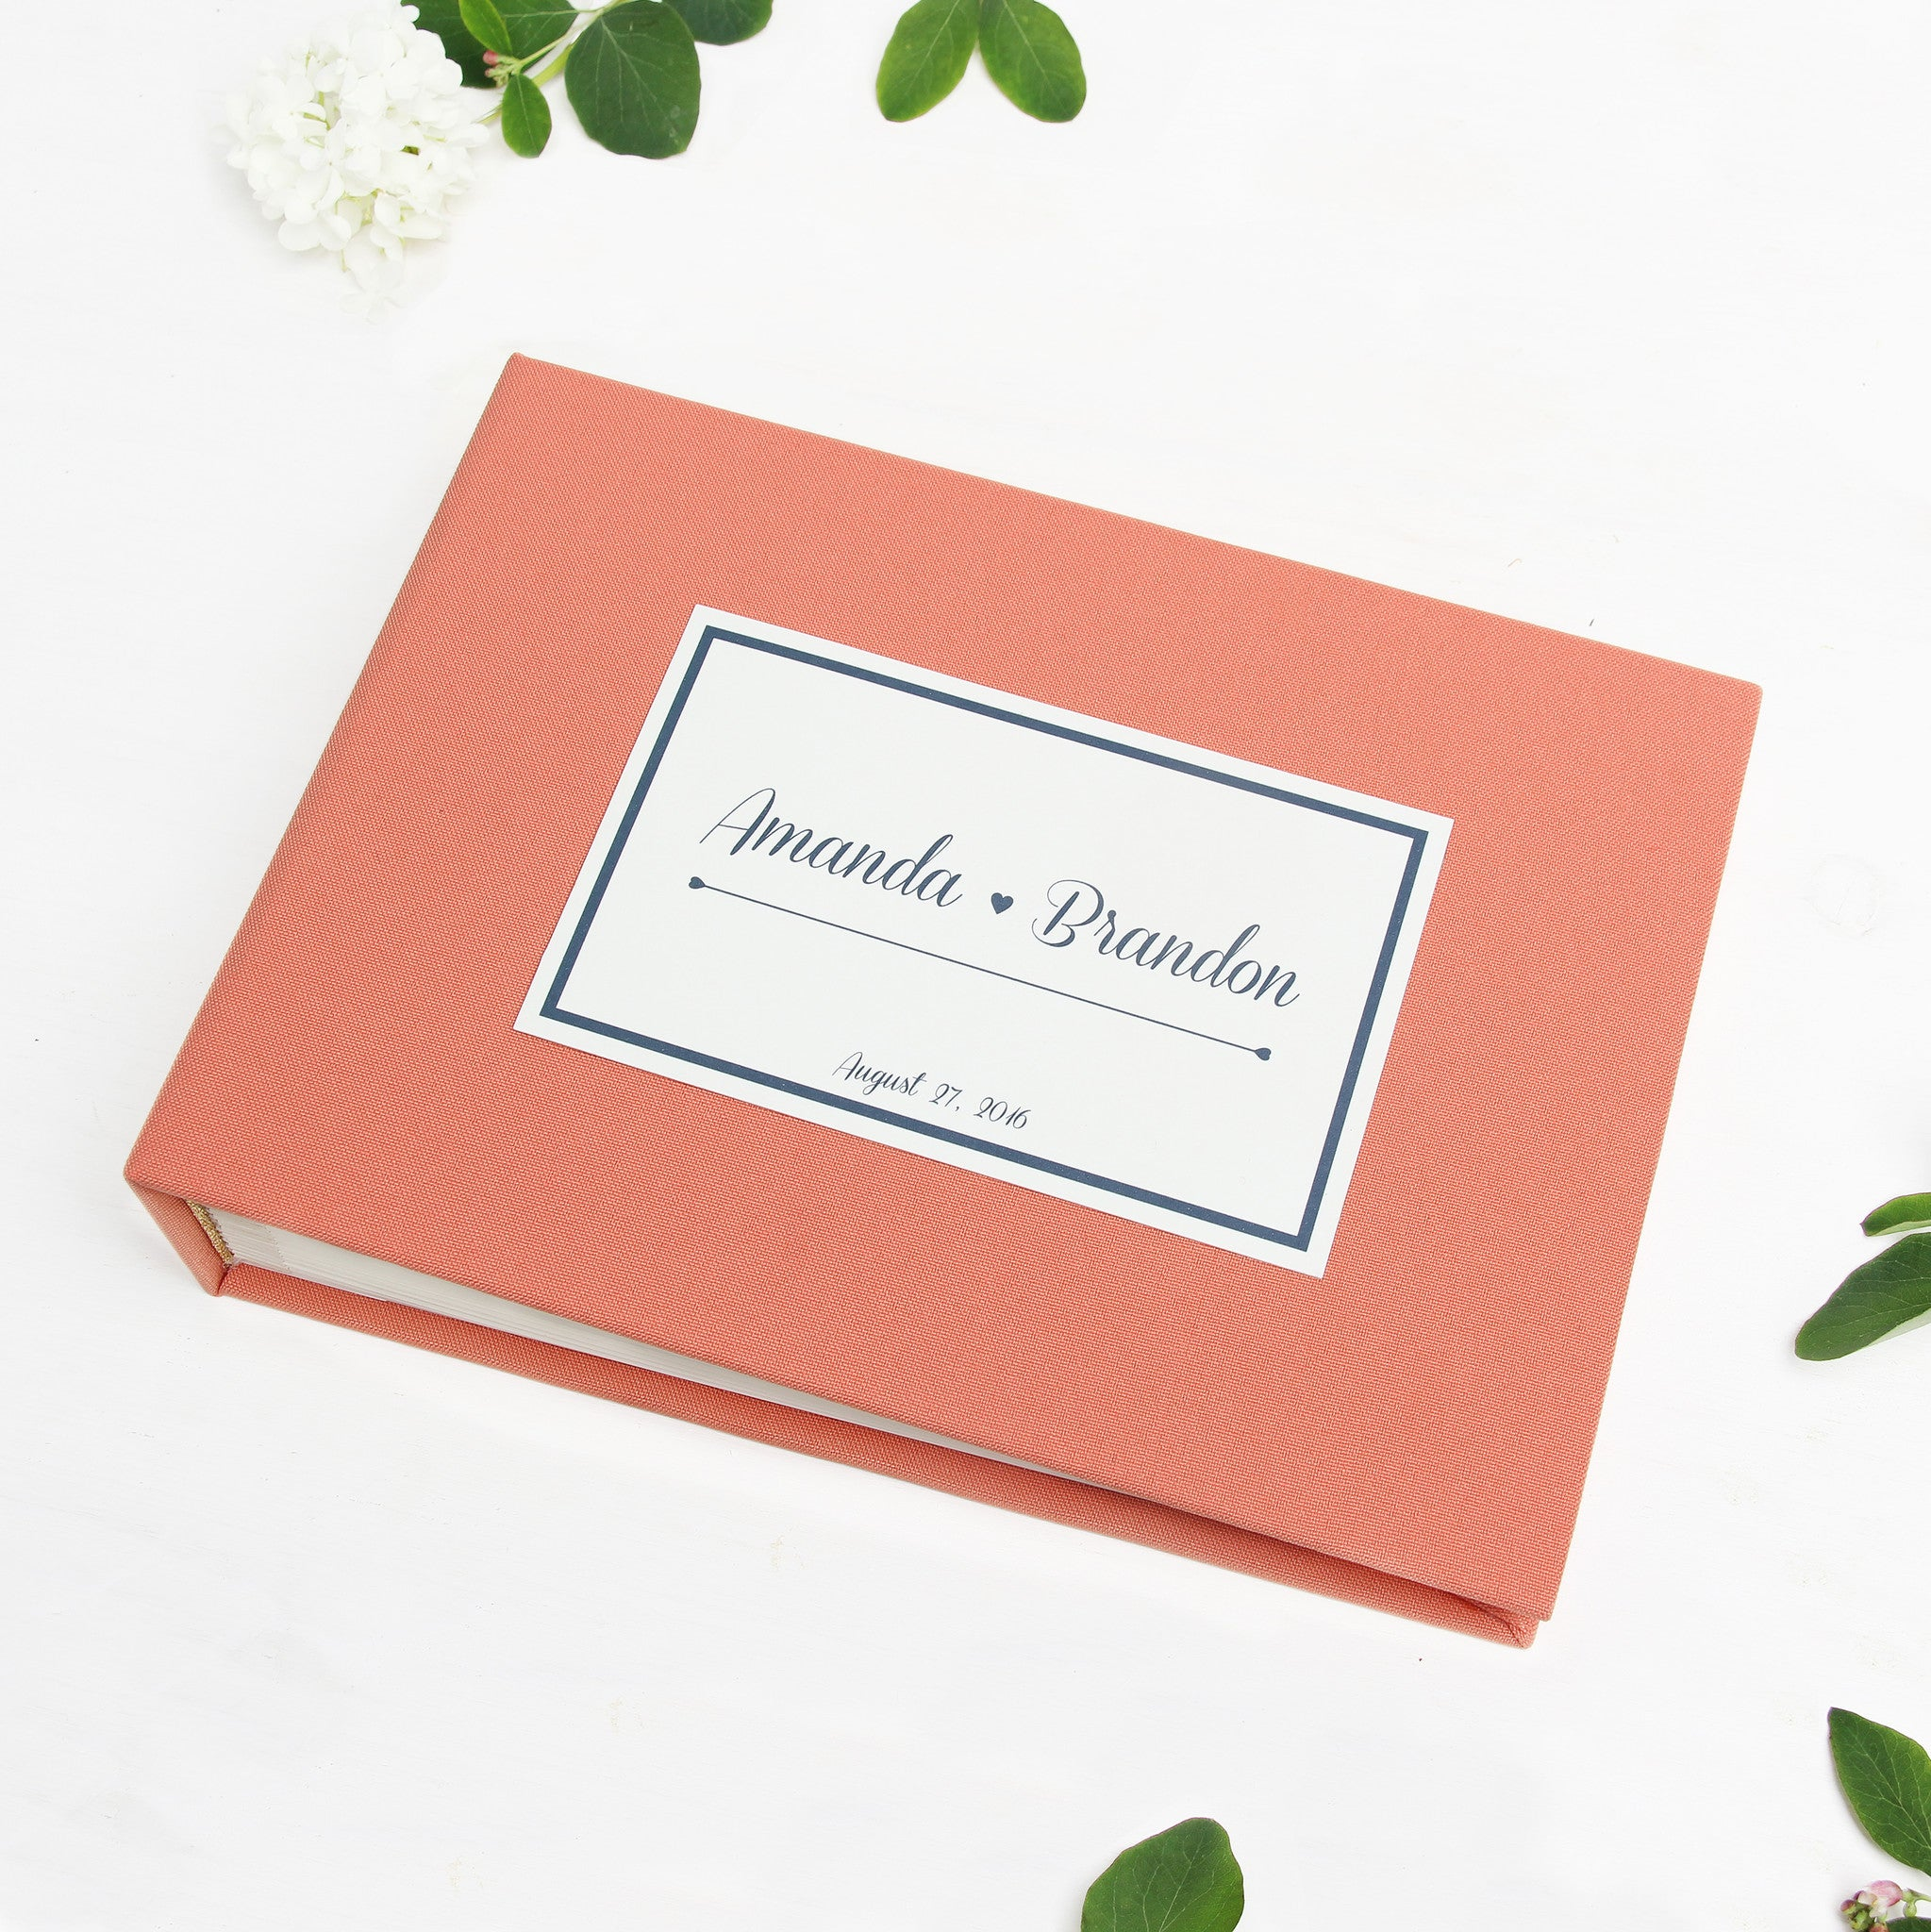 Guest Book Sign in Book Wedding Instant Photo Album Coral with Paper Label by Liumy - Liumy